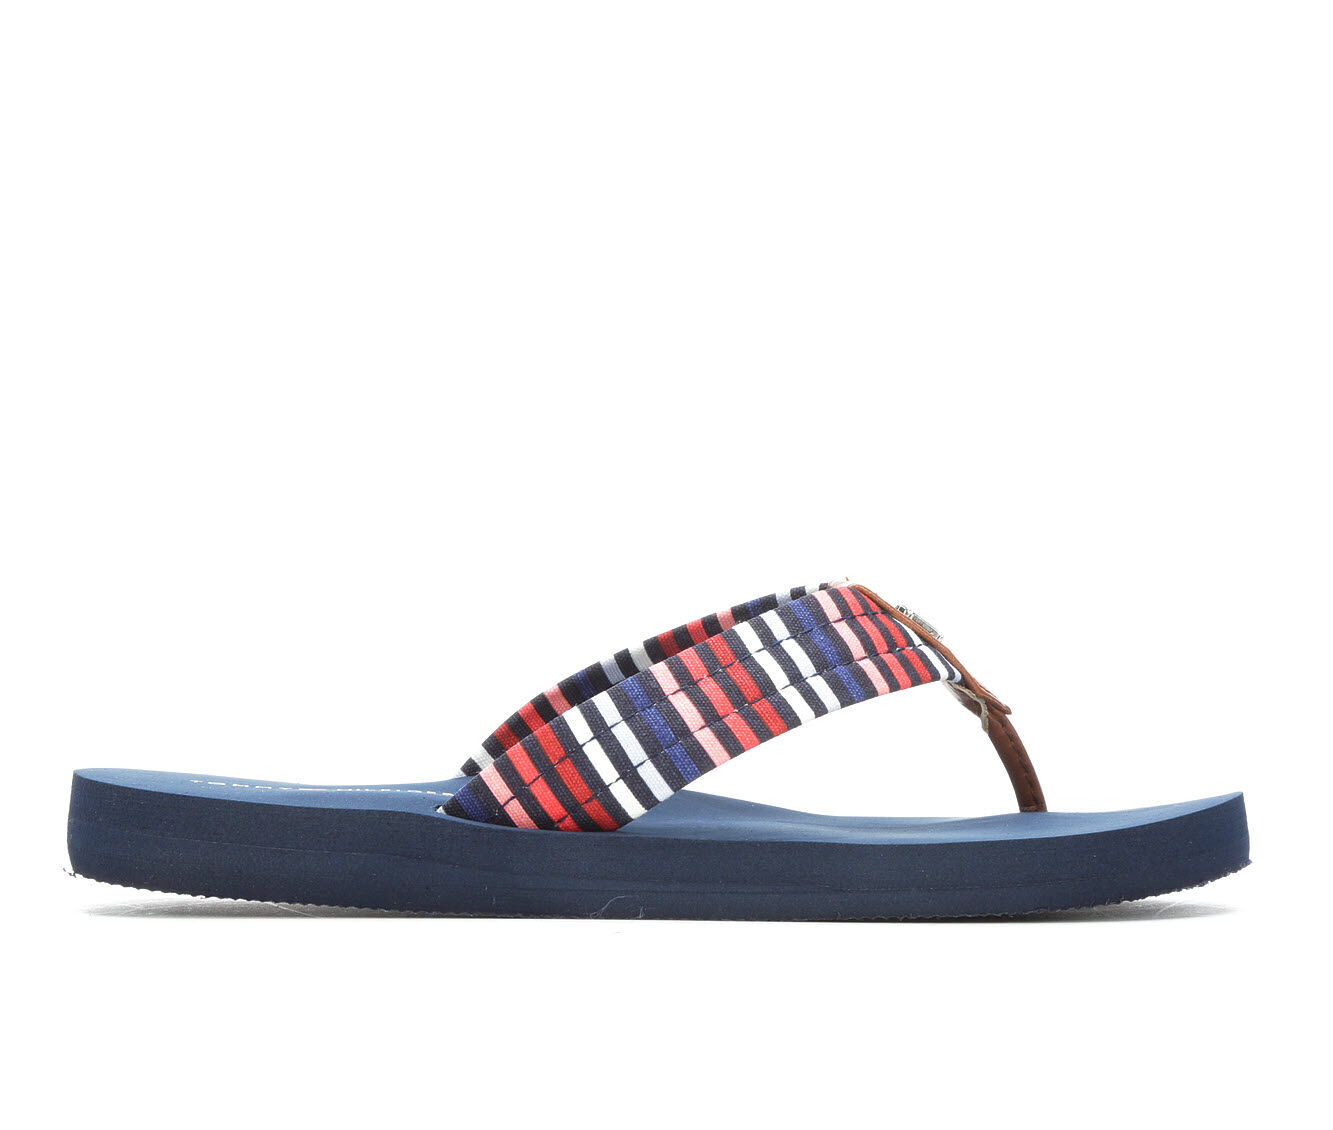 Women's Tommy Hilfiger Chimy Sandals Pink Multi